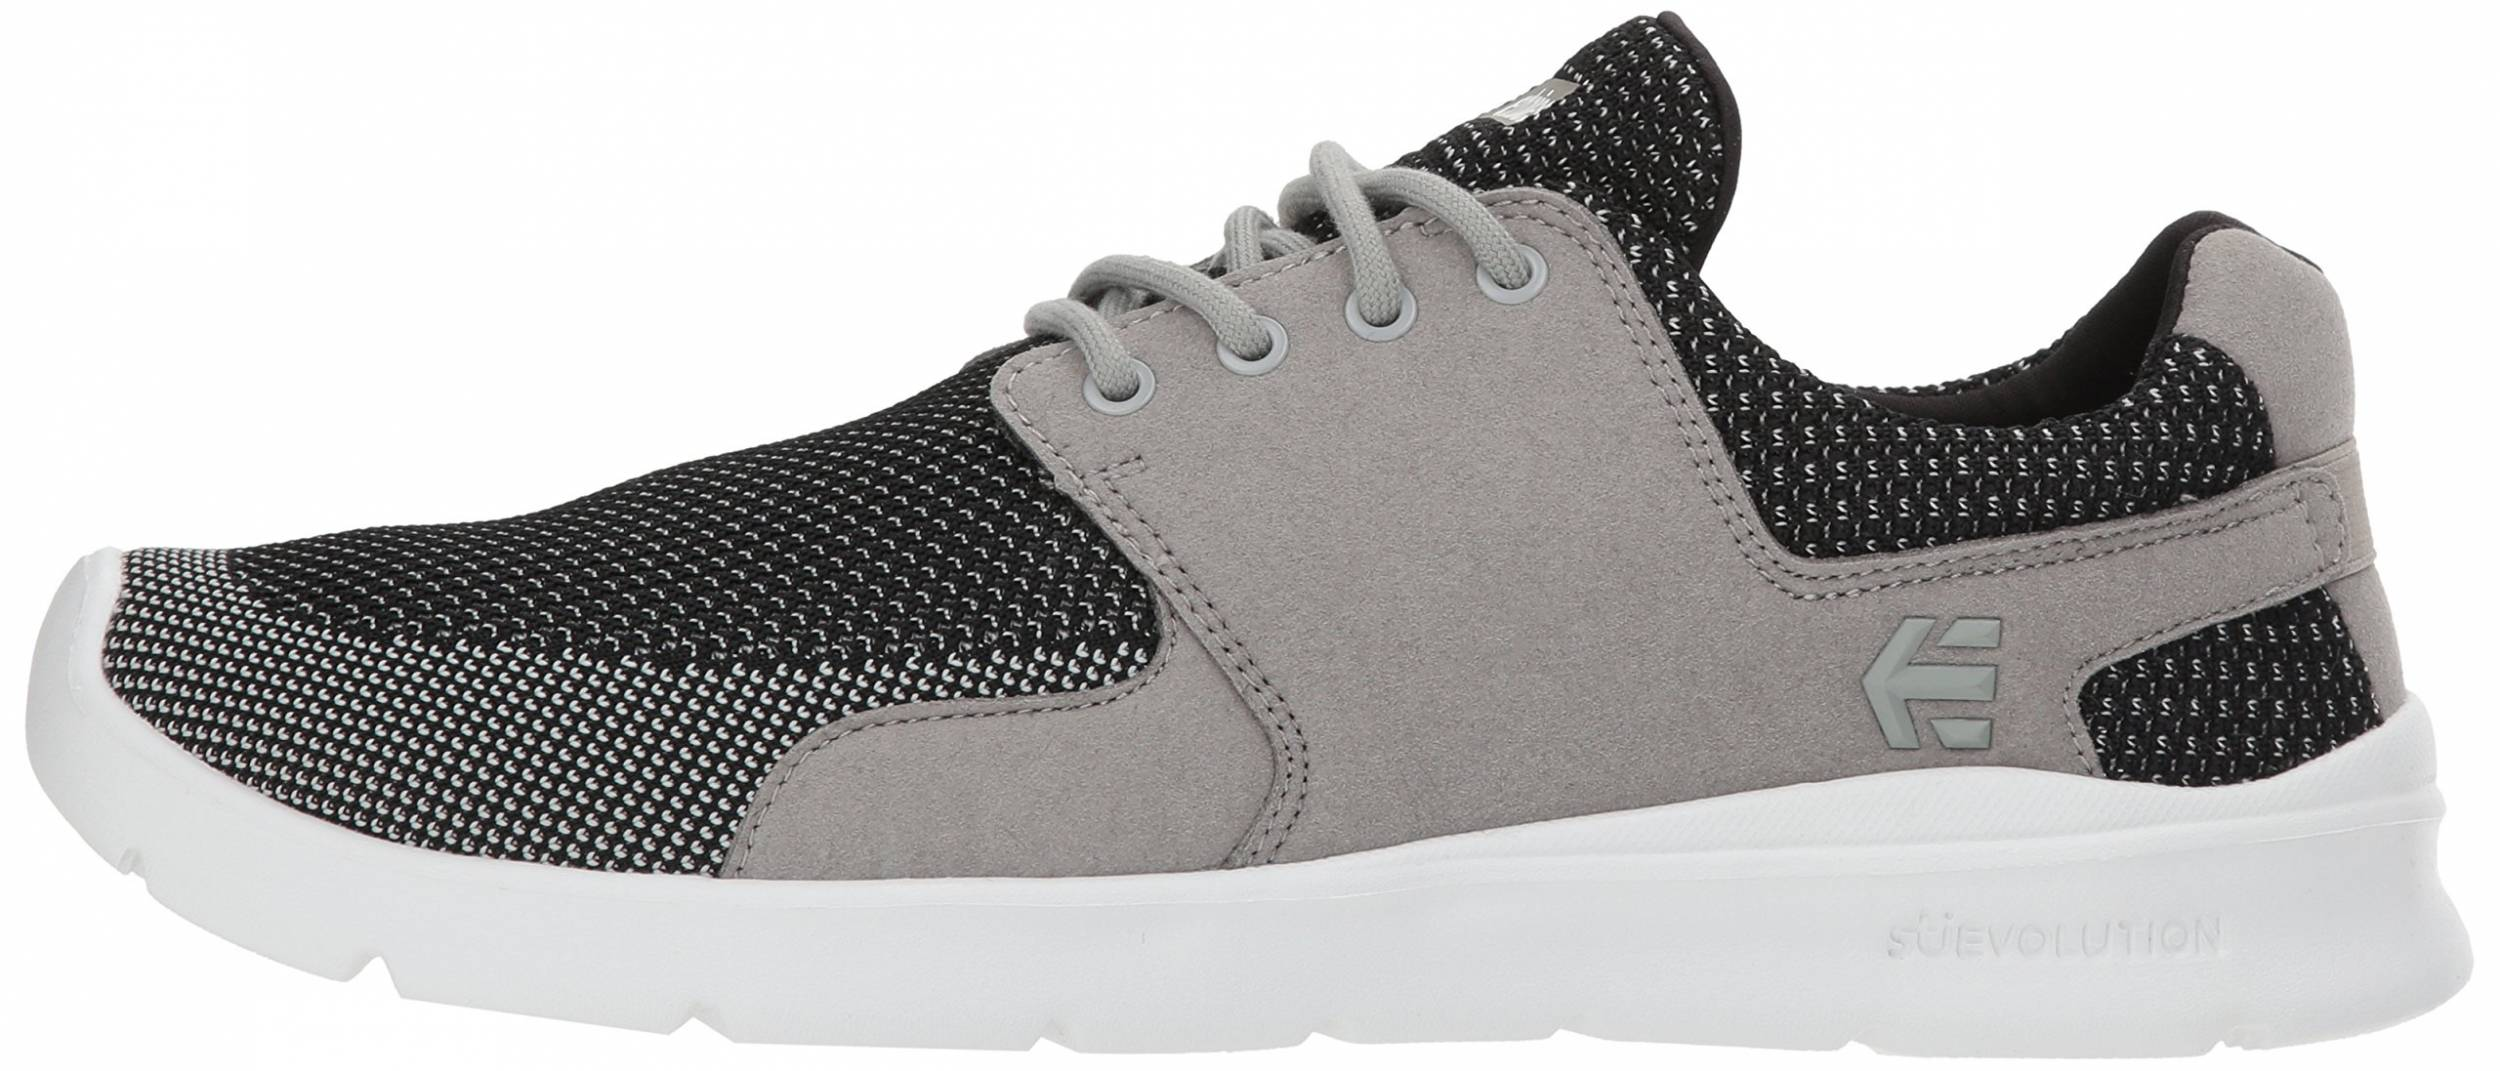 Only $34 + Review of Etnies Scout XT